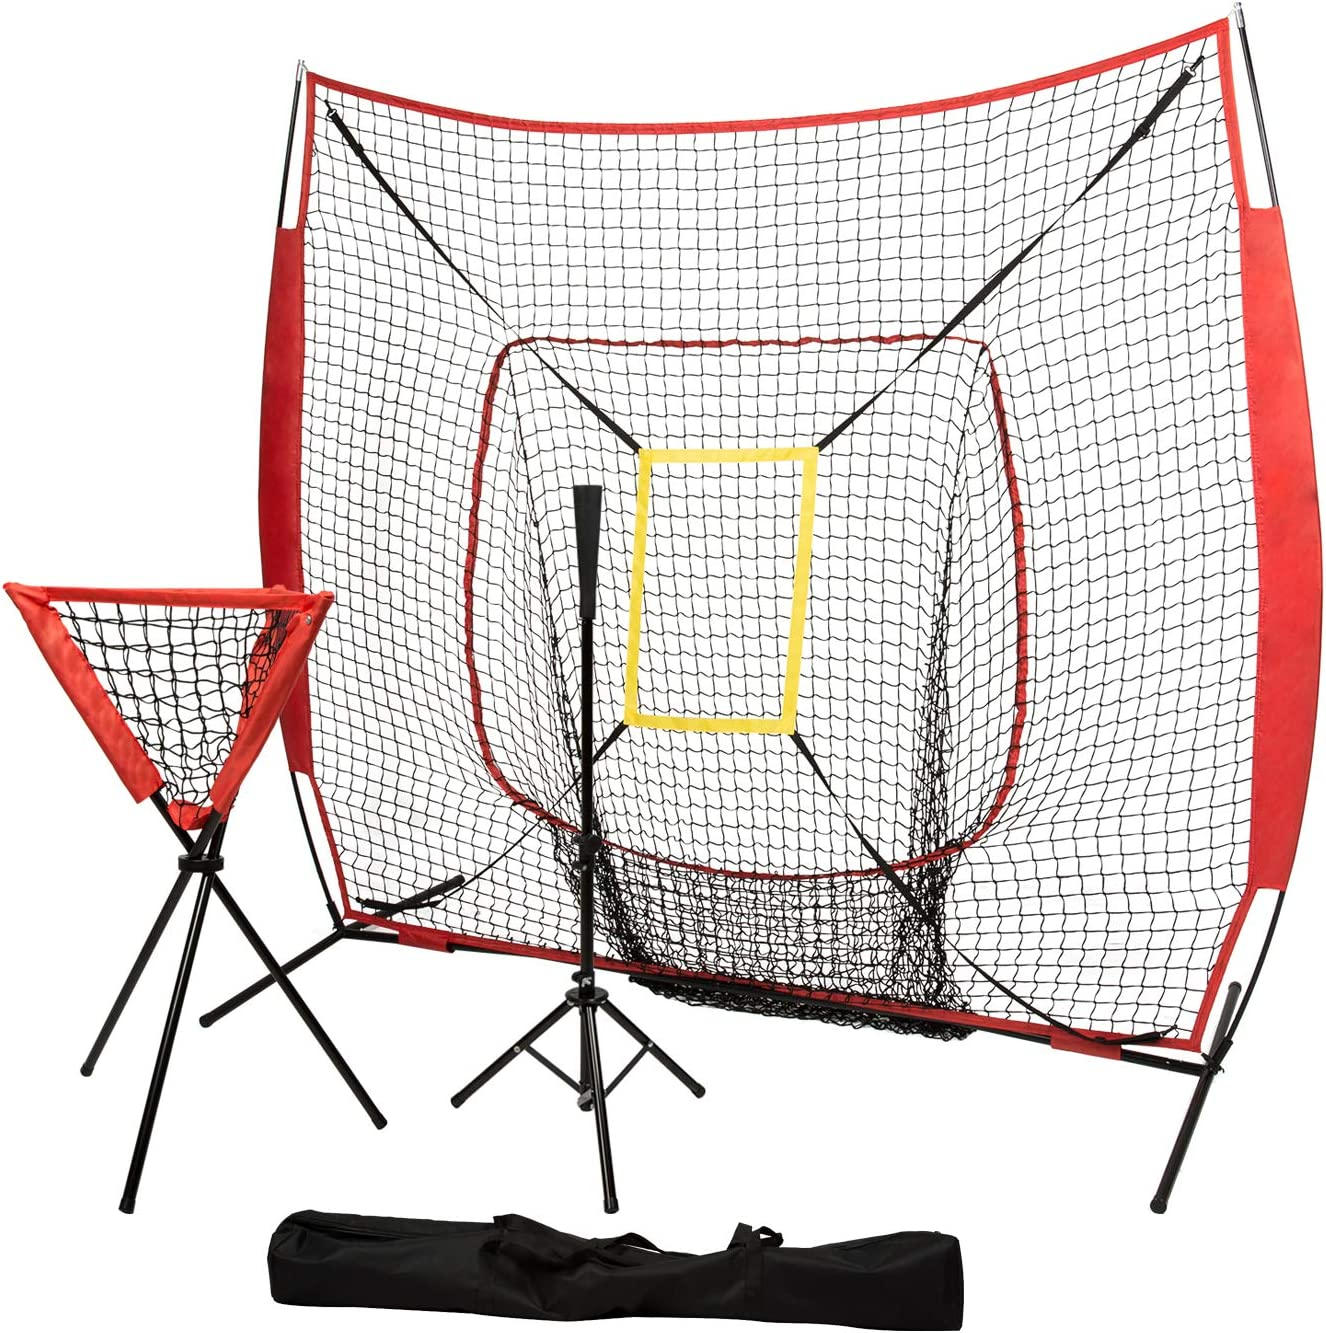 Kinsuite 7 x Baseball and Softball for Net Hitting Practice Max Cash special price 60% OFF Ba